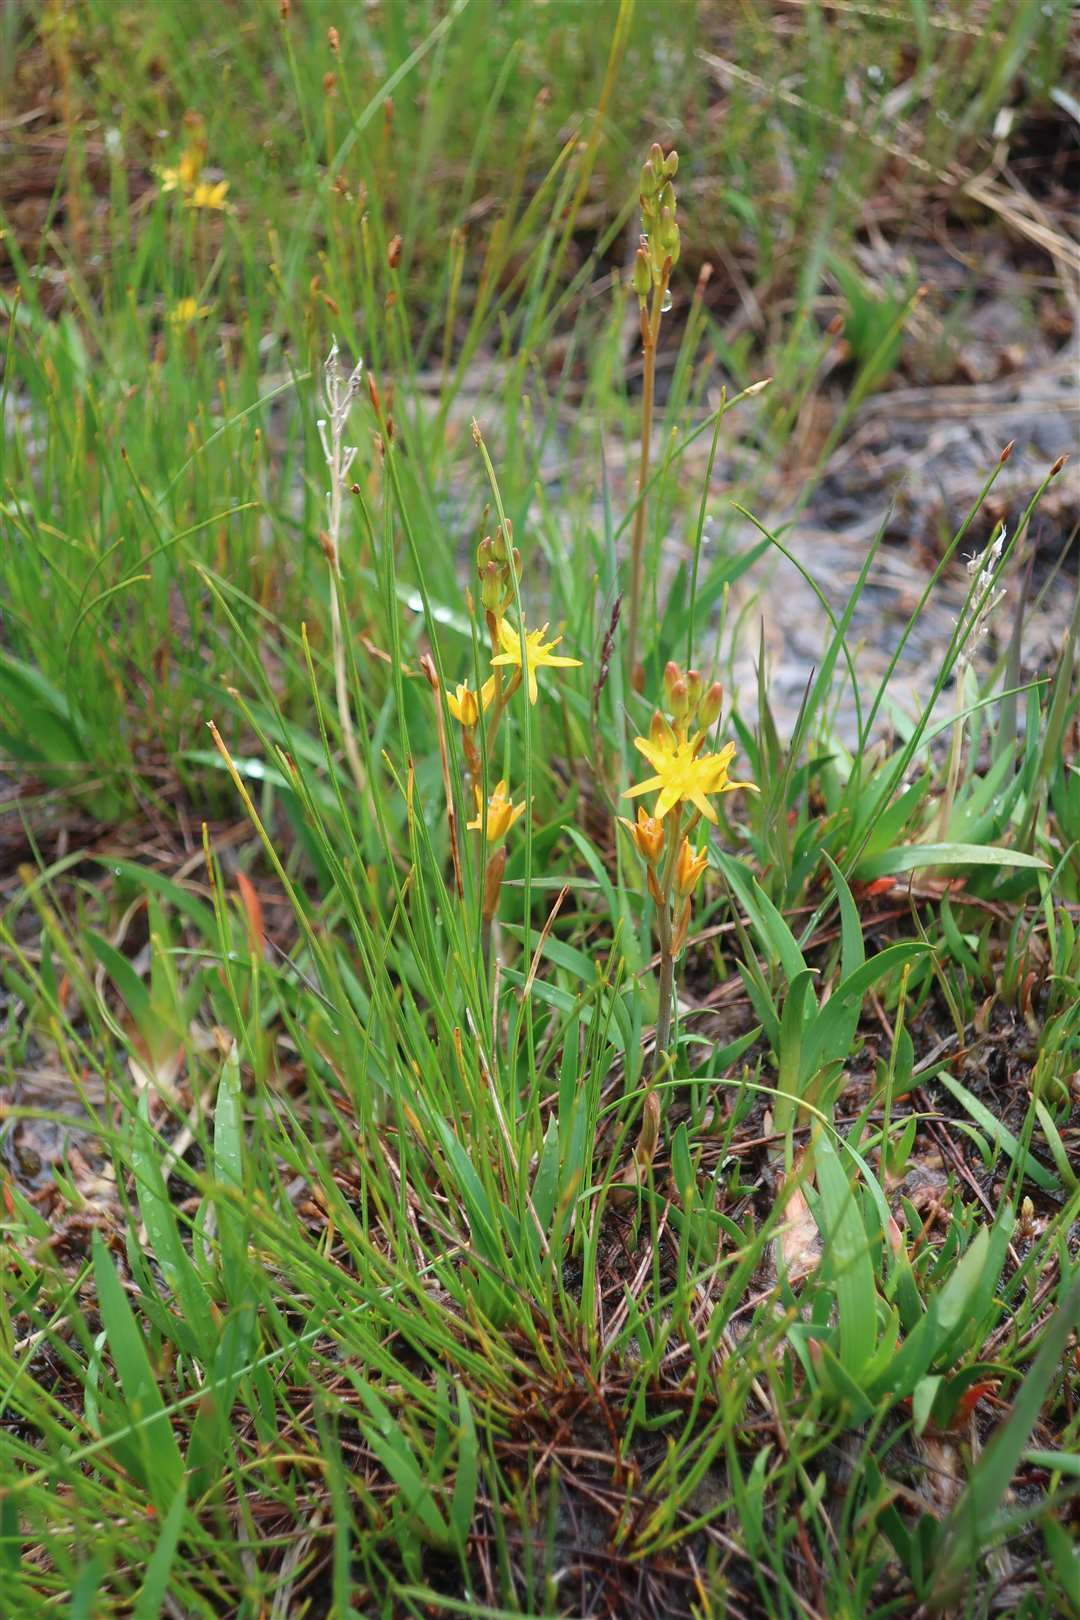 The bog asphodel was plentiful in the wet conditions.